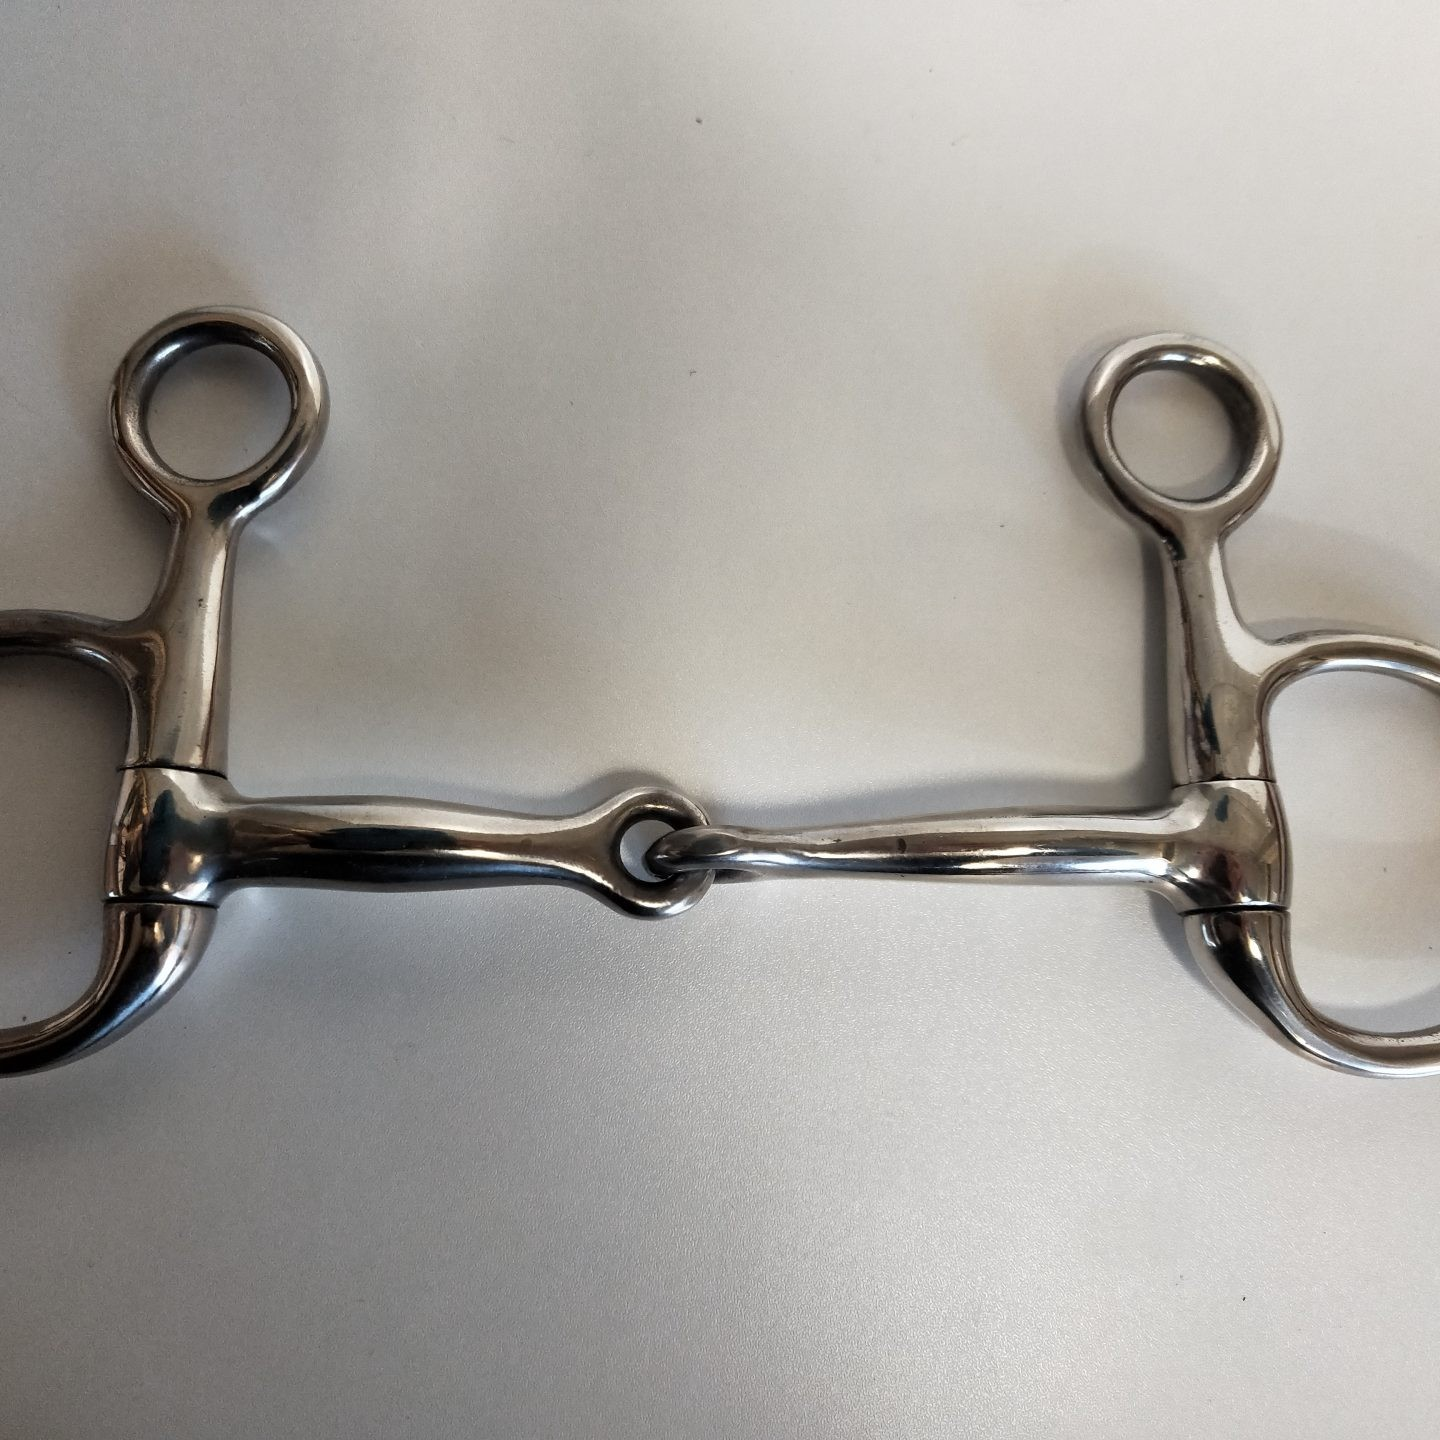 Baucher Half Cheek Snaffle